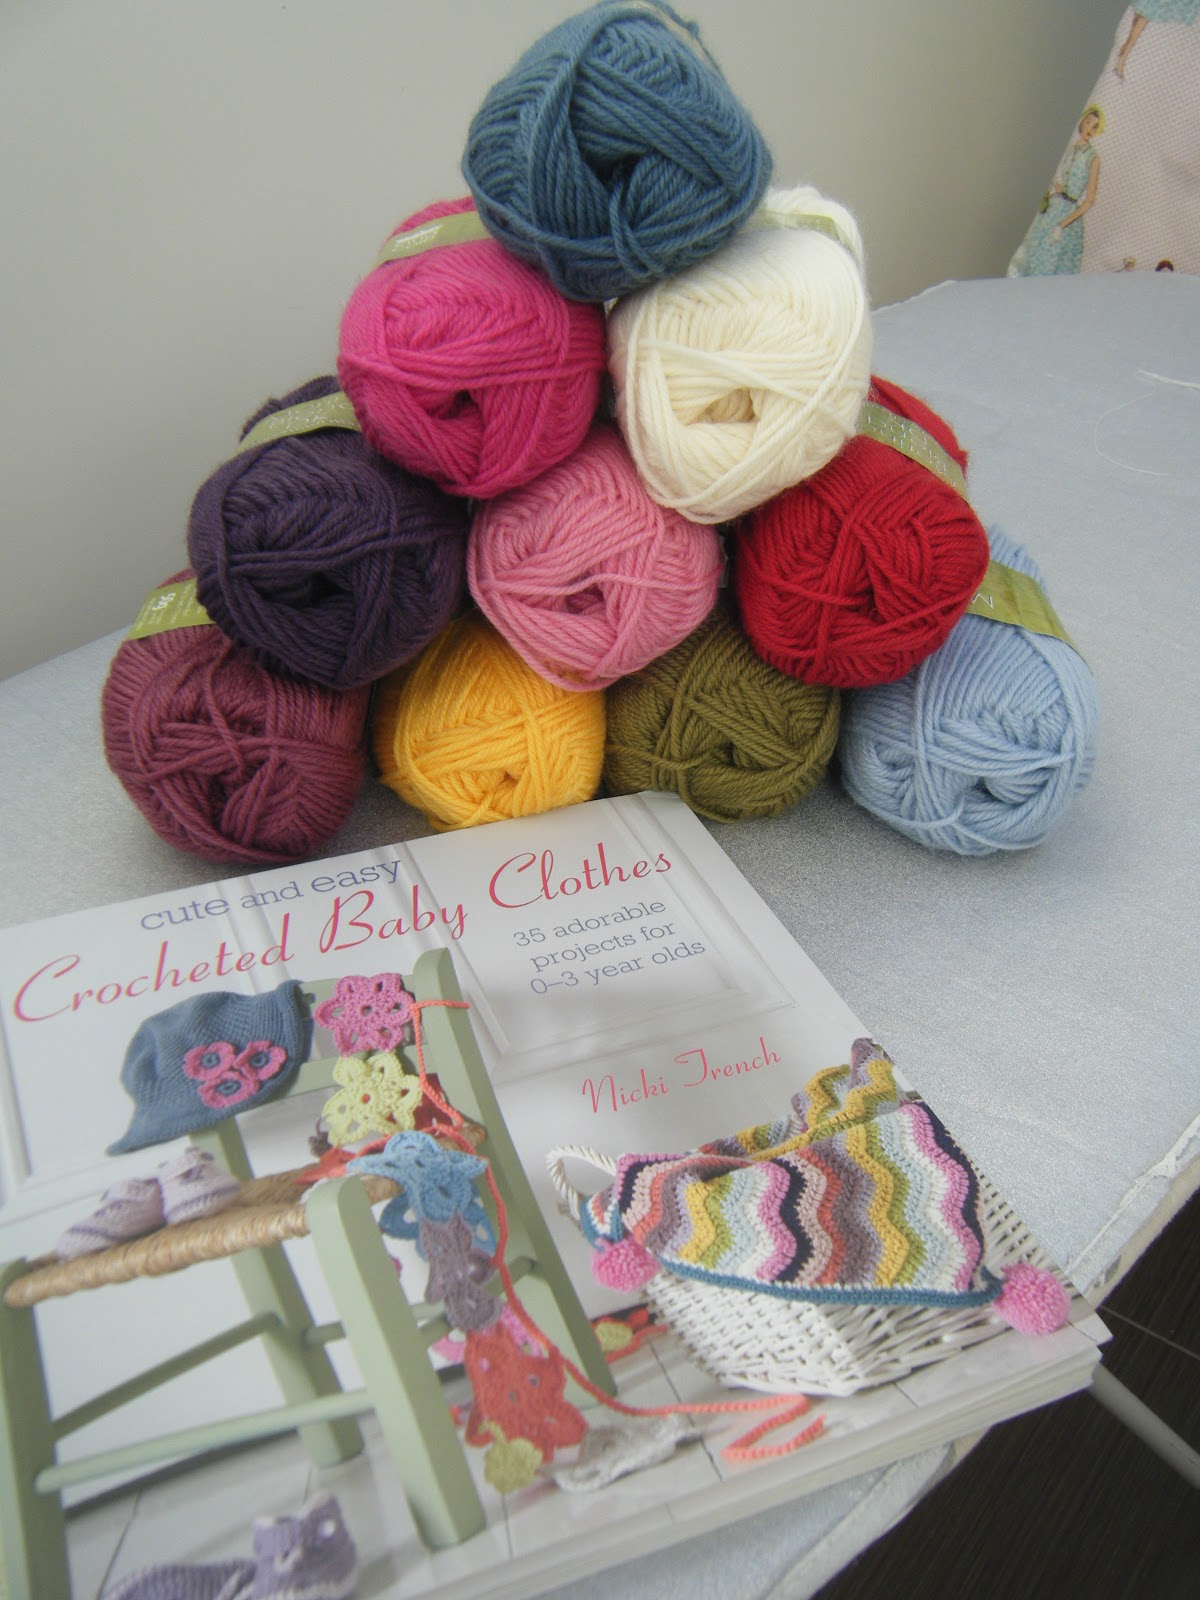 Nicki Trench gorgeous book and King Cole wool